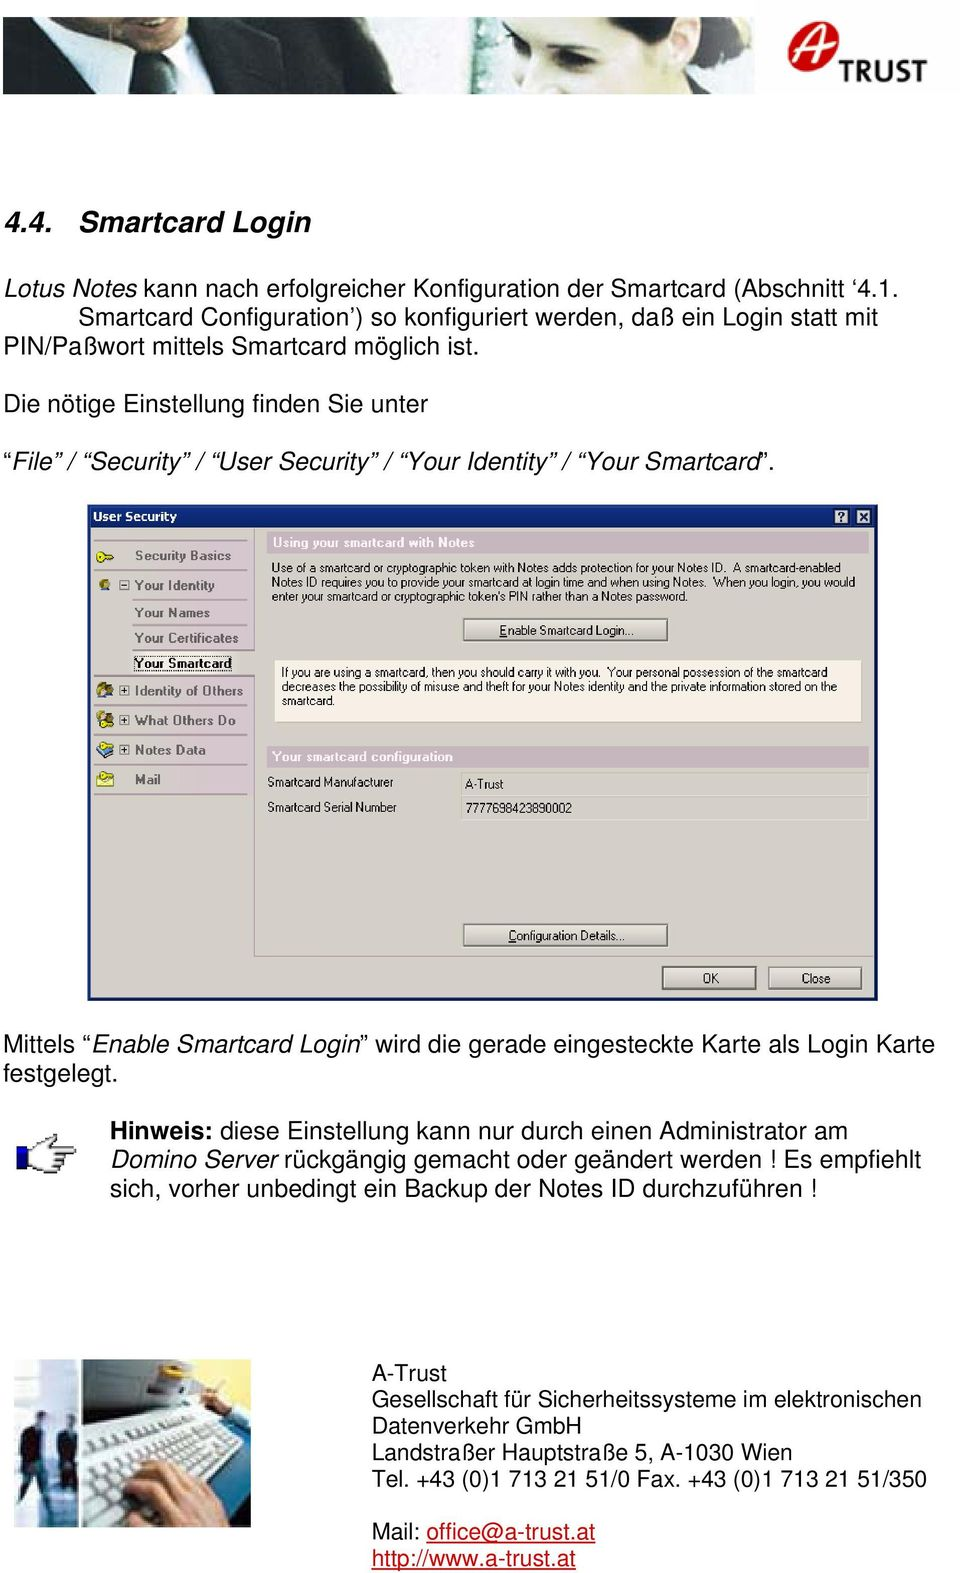 Die nötige Einstellung finden Sie unter File / Security / User Security / Your Identity / Your Smartcard.